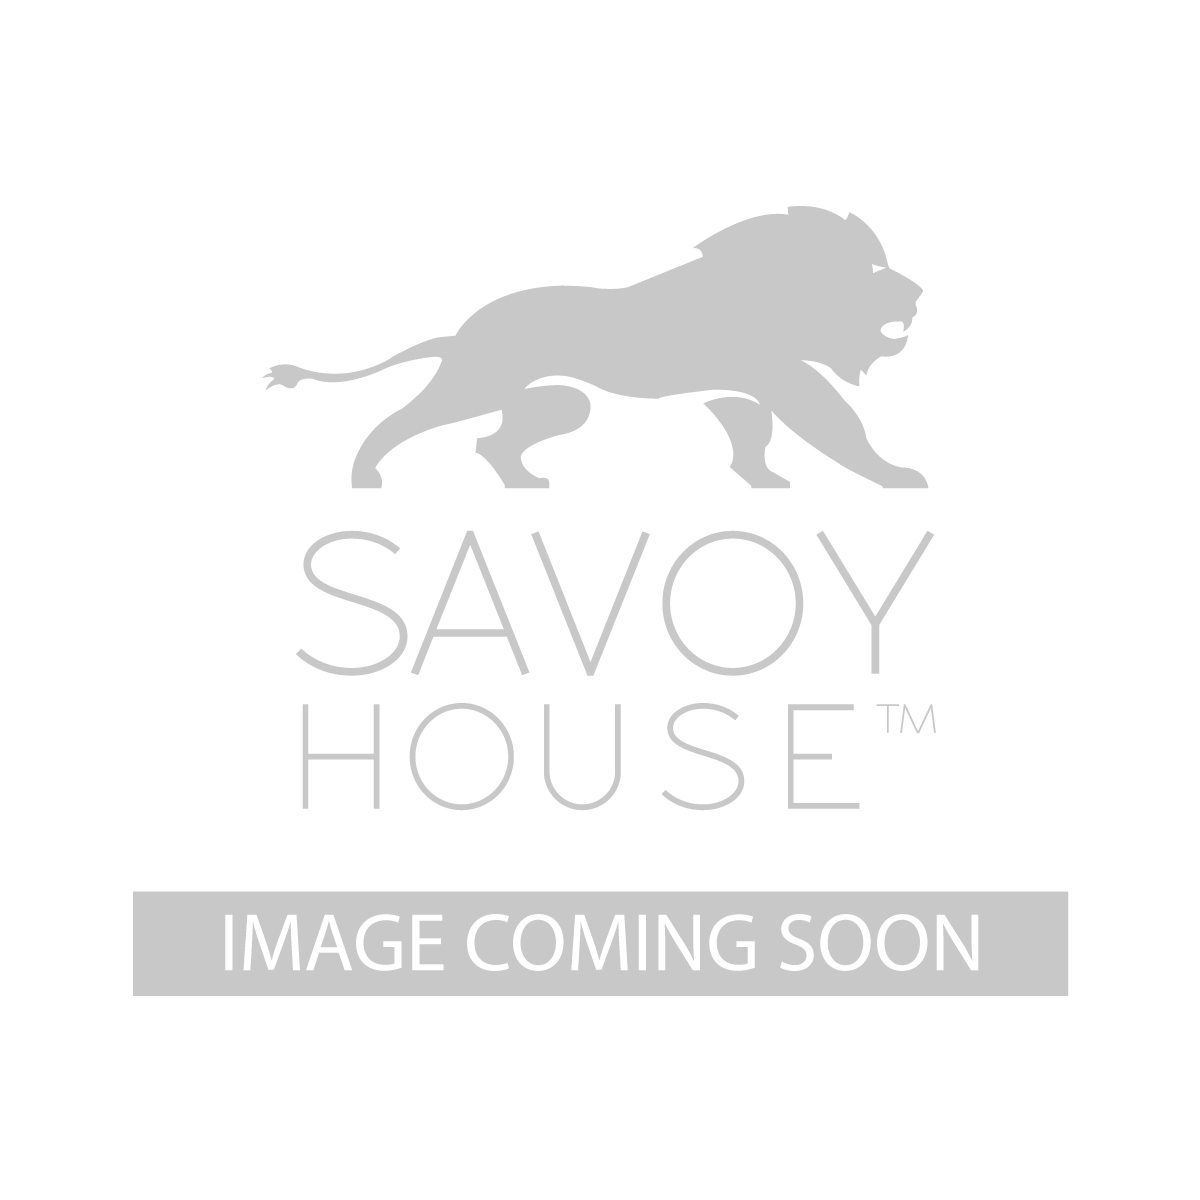 7P 3 16 Knight 3 Light Bowl Pendant by Savoy House